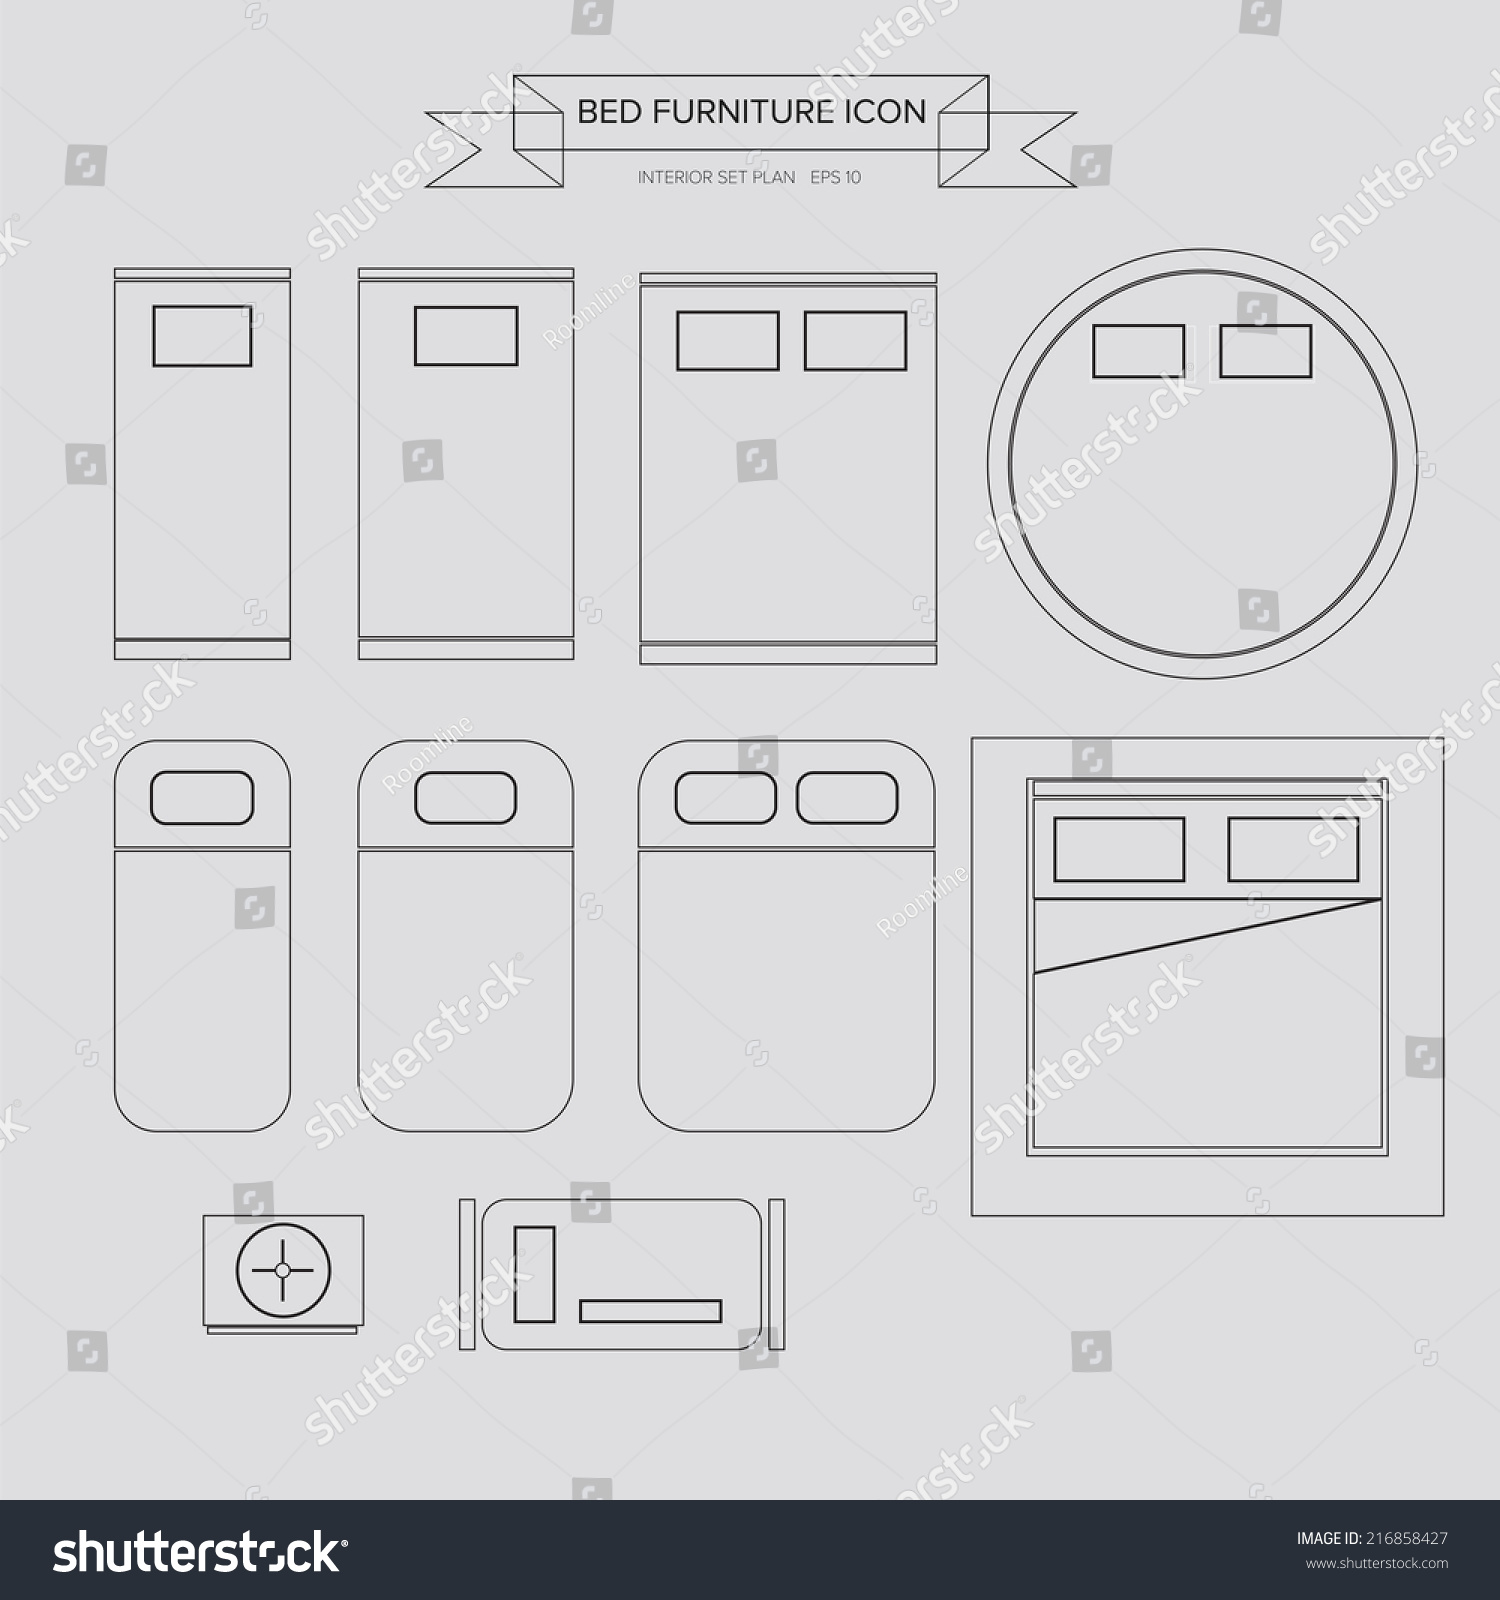 Bed design top view image - Bed Furniture Outline Icon Top View For Interior Plan Vector Eps10